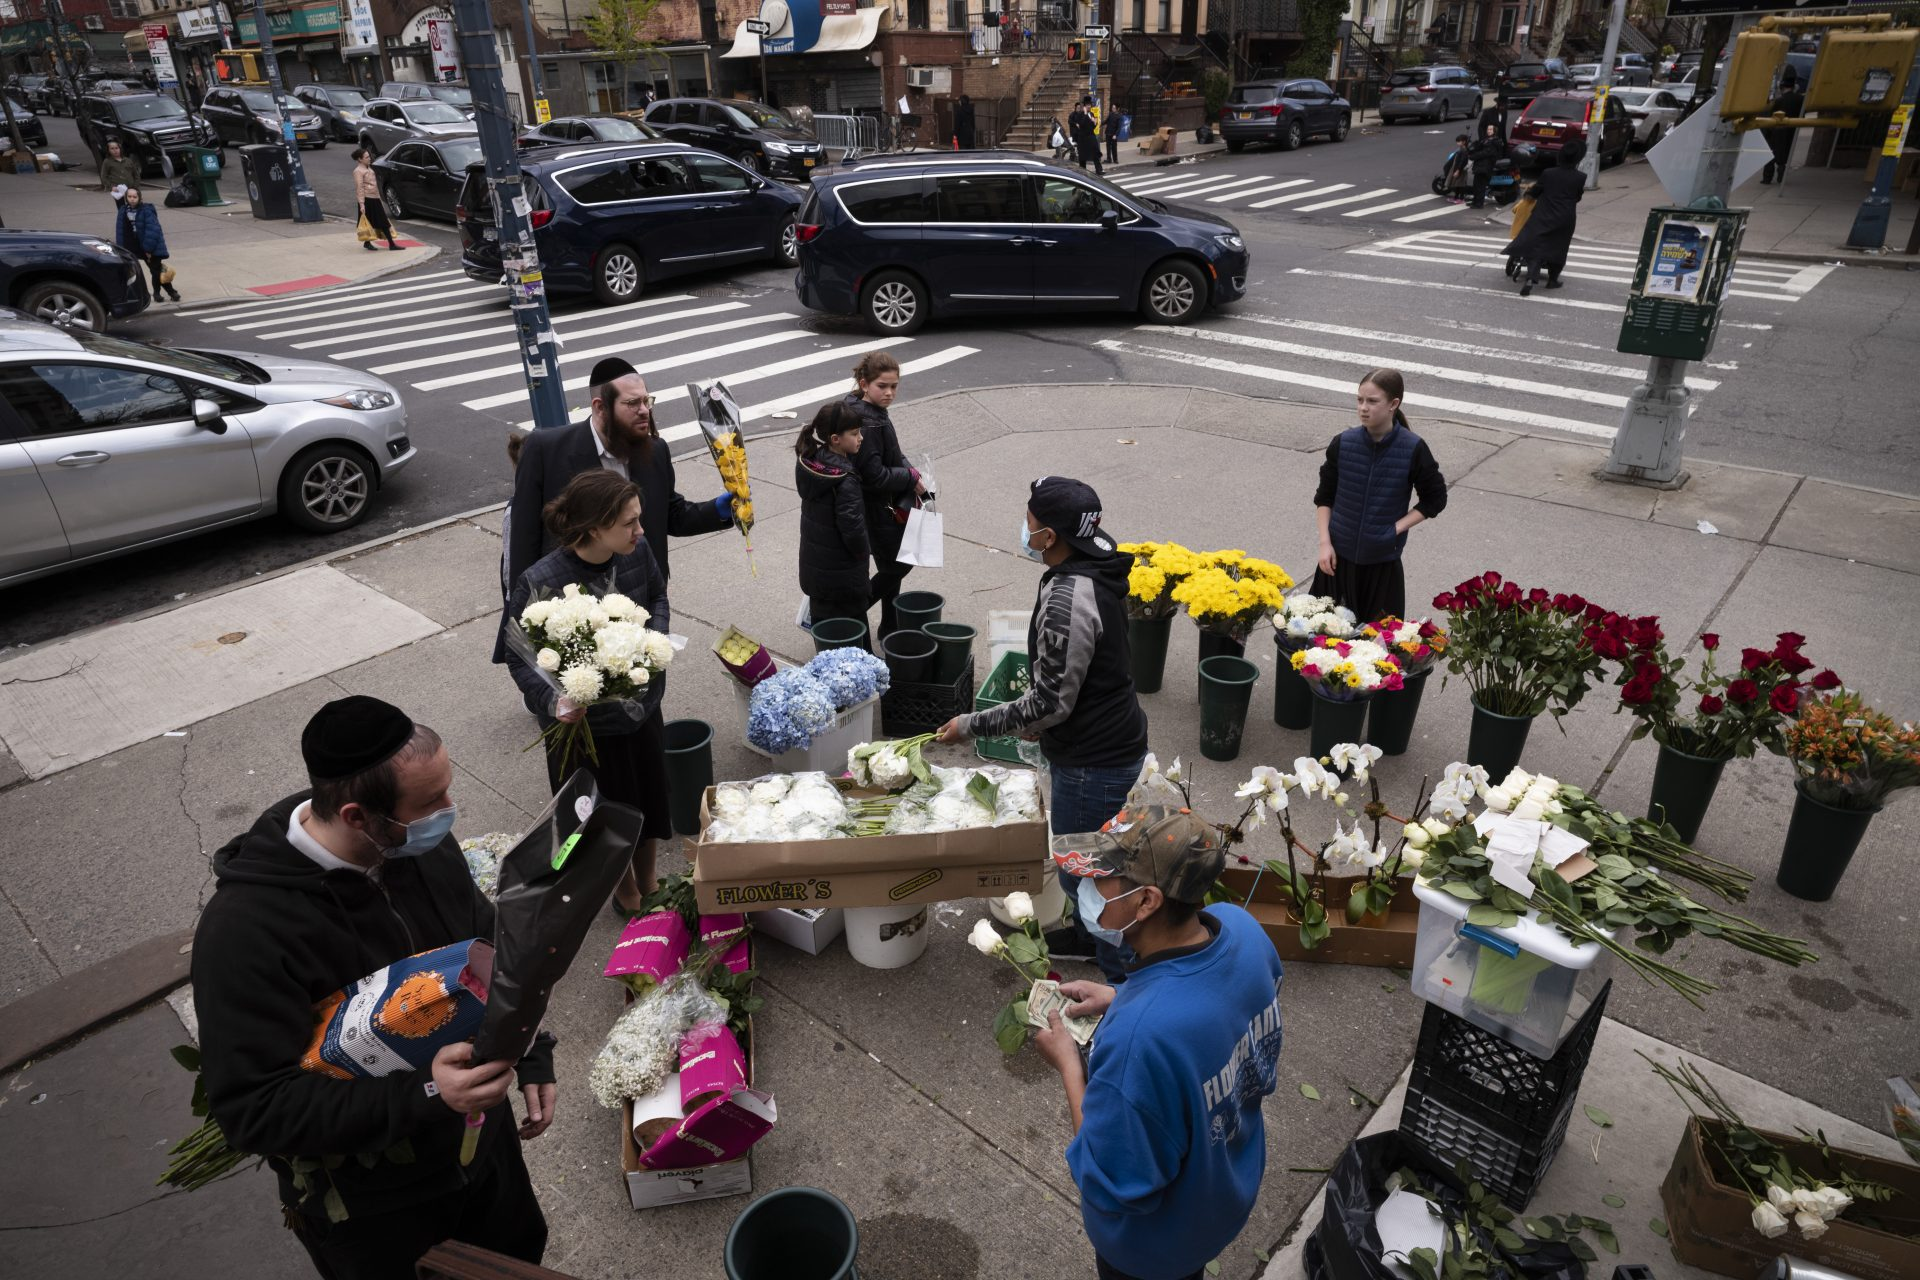 In this Wednesday, April 8, 2020 file photo, people buy flowers from a sidewalk flower stand on the first day of Passover in the Williamsburg neighborhood of New York during the coronavirus pandemic.